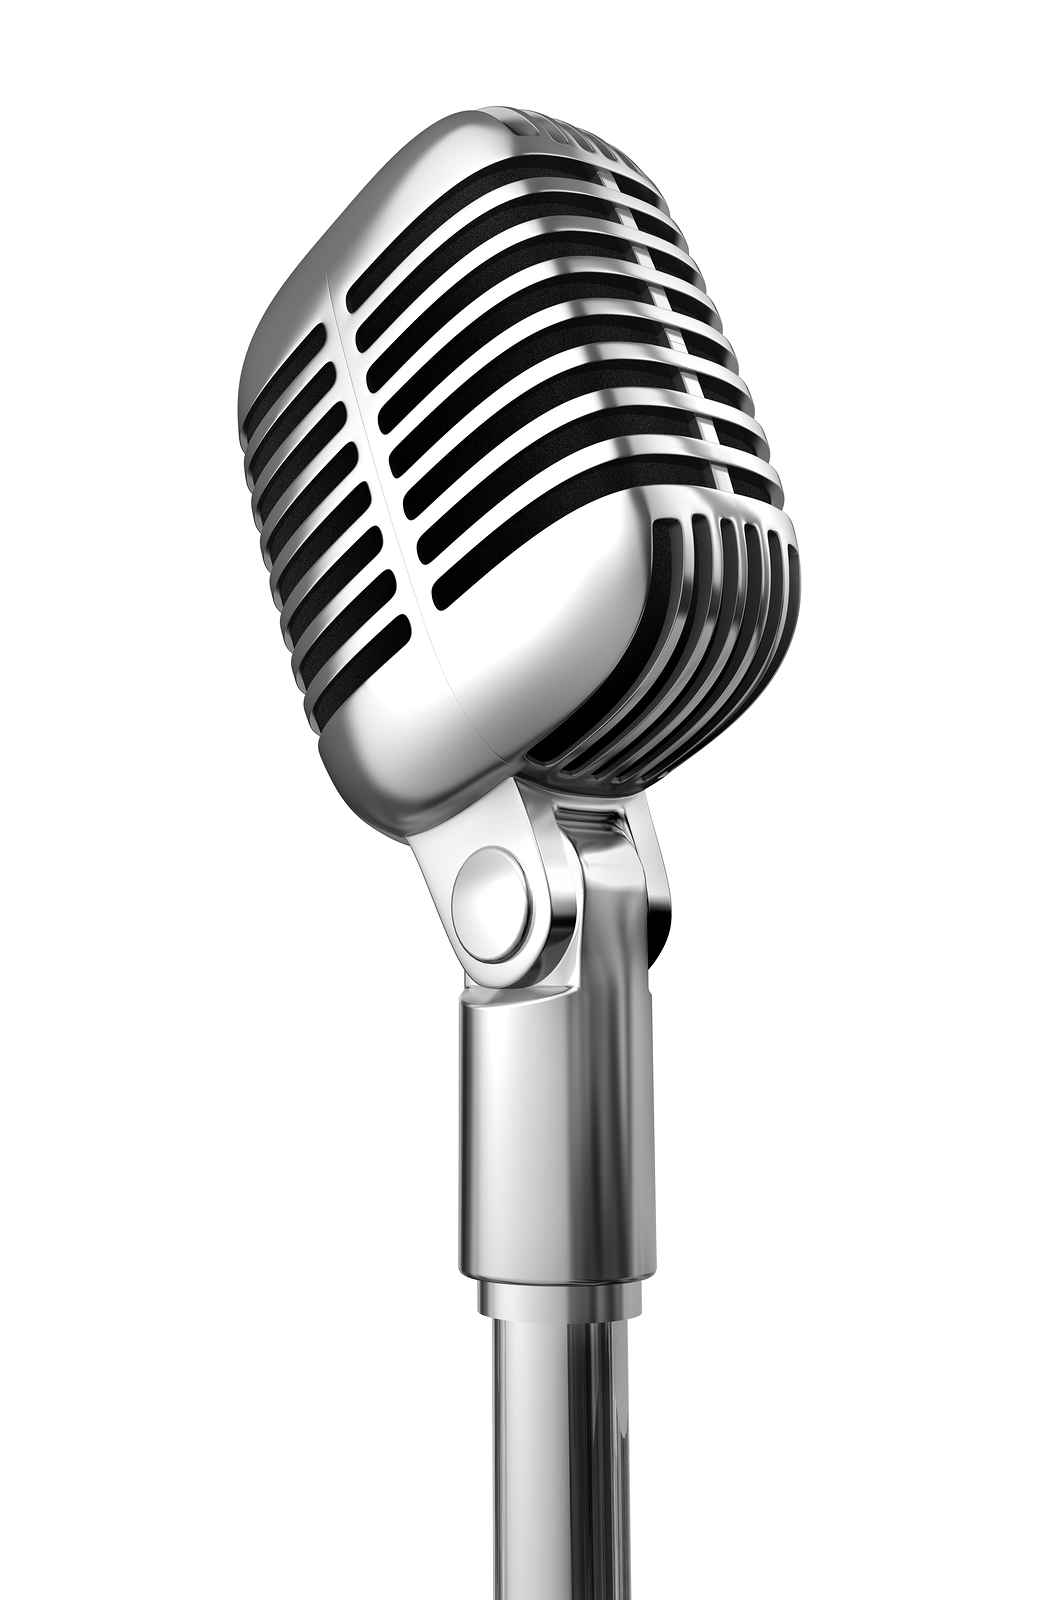 Audio clipart mike PNG Advertisement Transparent Images Microphone